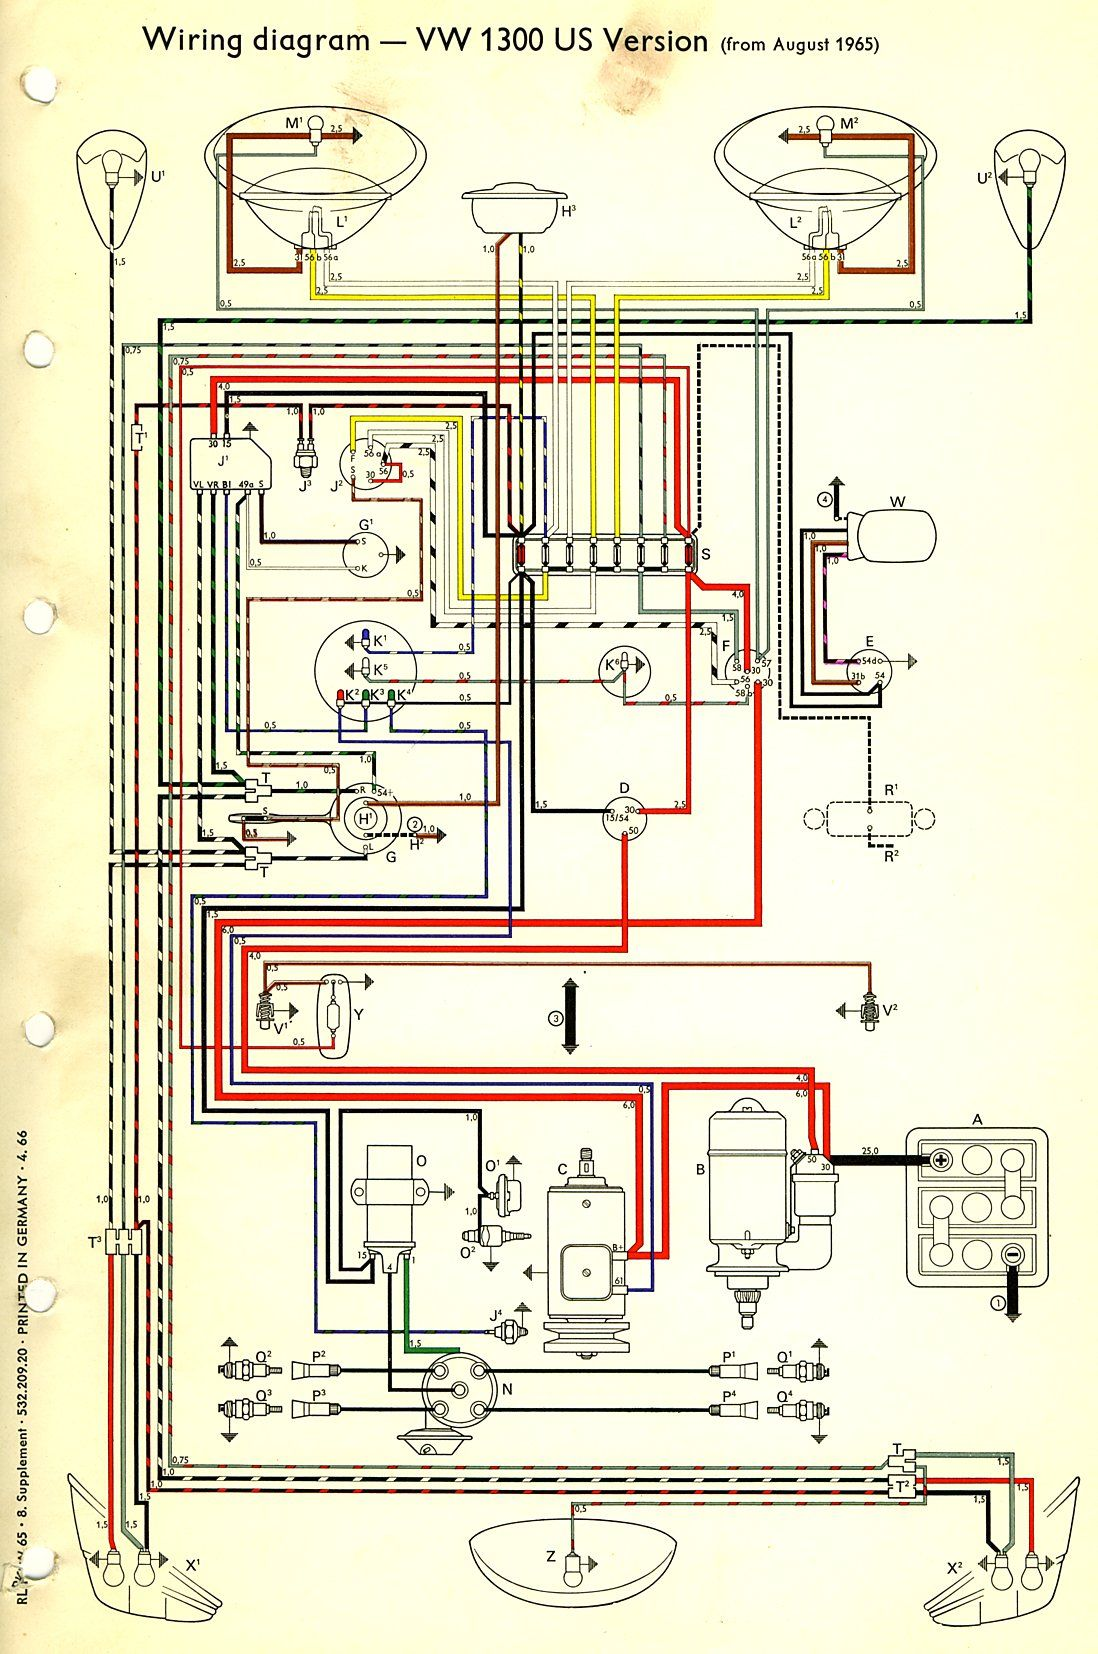 1972 Vw Dune Buggy Wiring Diagram - Wiring Diagram Expert Baja Dune Wiring Diagram Color on baja dune 150 parts, baja dune 150cc, baja motorsports dune 150, baja dune buggy, baja dune 150 forum, baja dune 150-seat, baja dune 150 air cleaner,